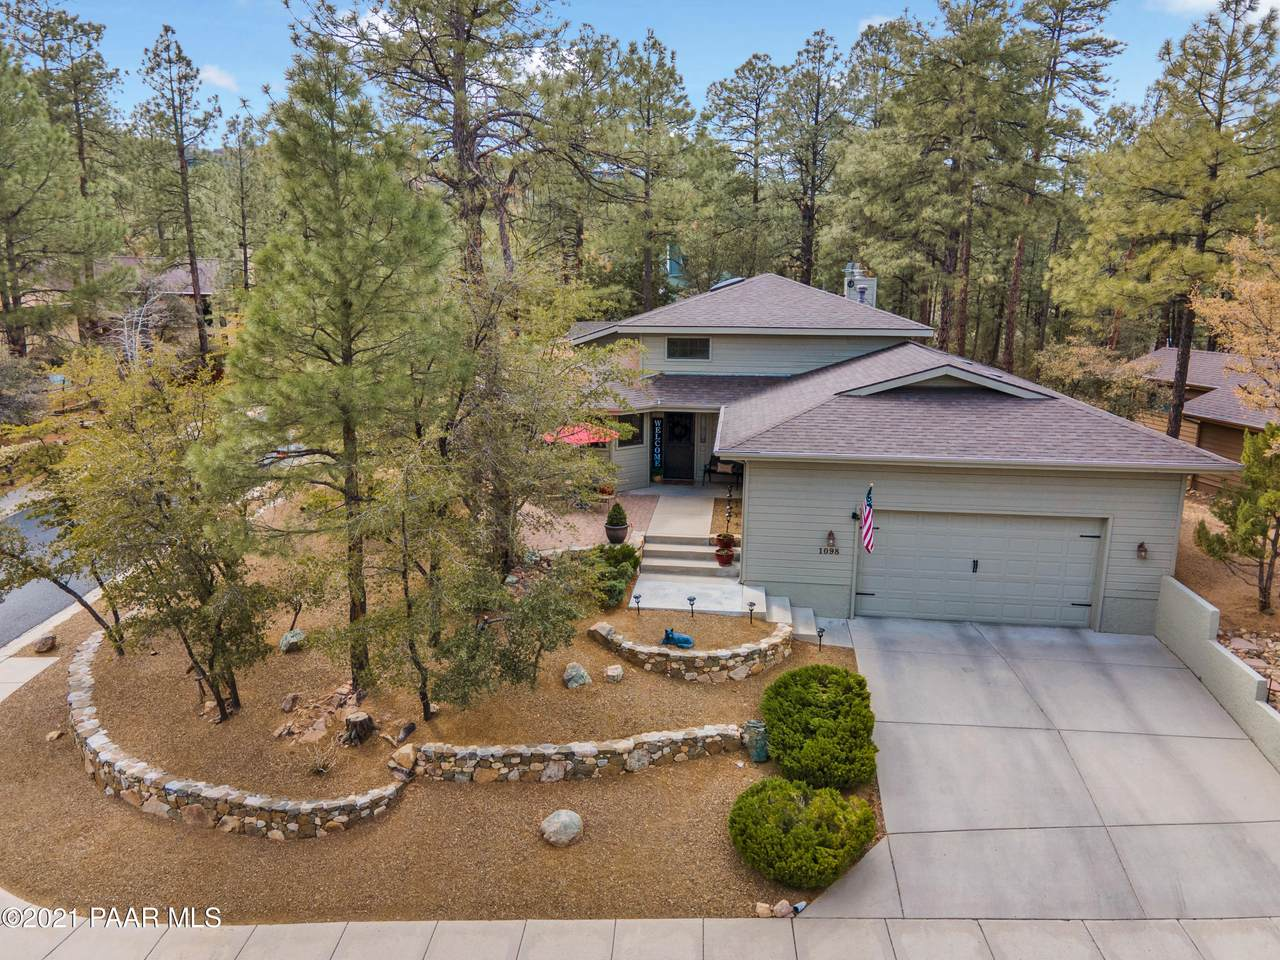 1098 Pine Country Court - Photo 1